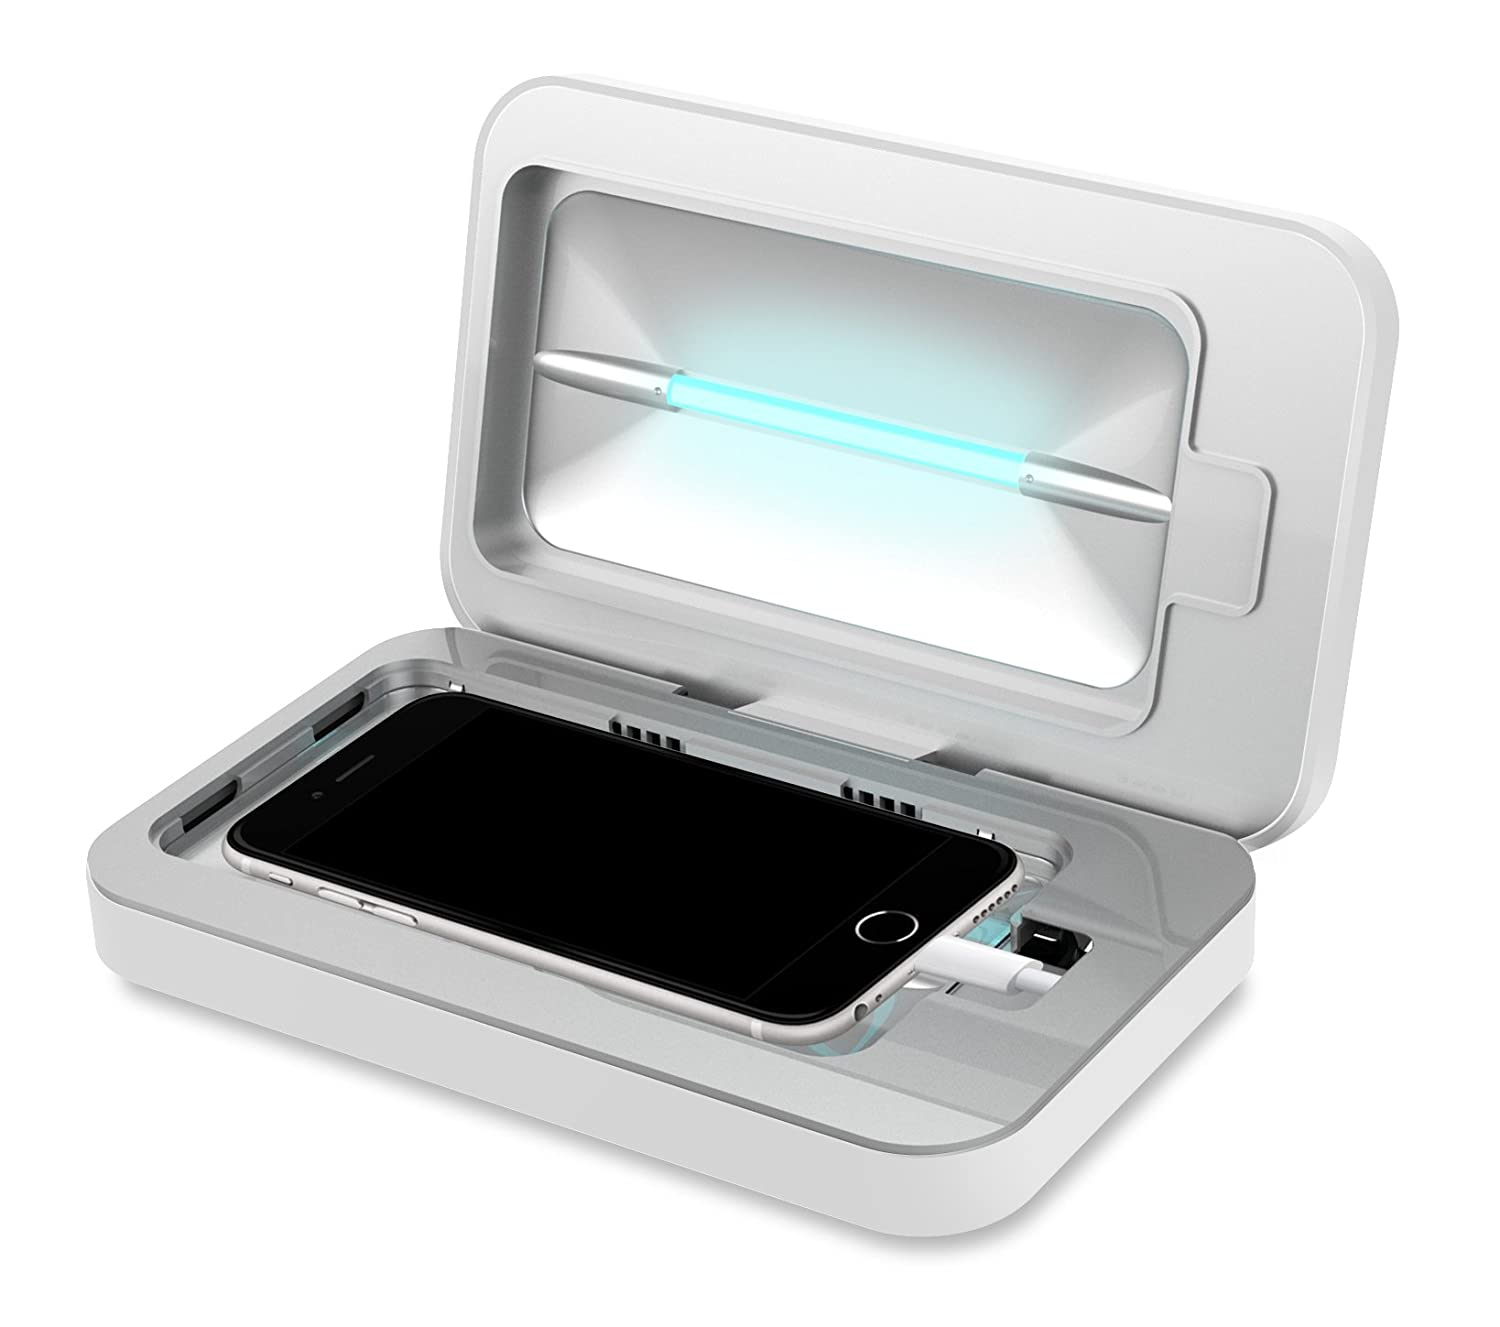 Phonesoap 20 Uv Sanitizer And Universal Phone Charger Cell Shield With Now Fits Iphone 6s Plus Phablets White Phones Accessories